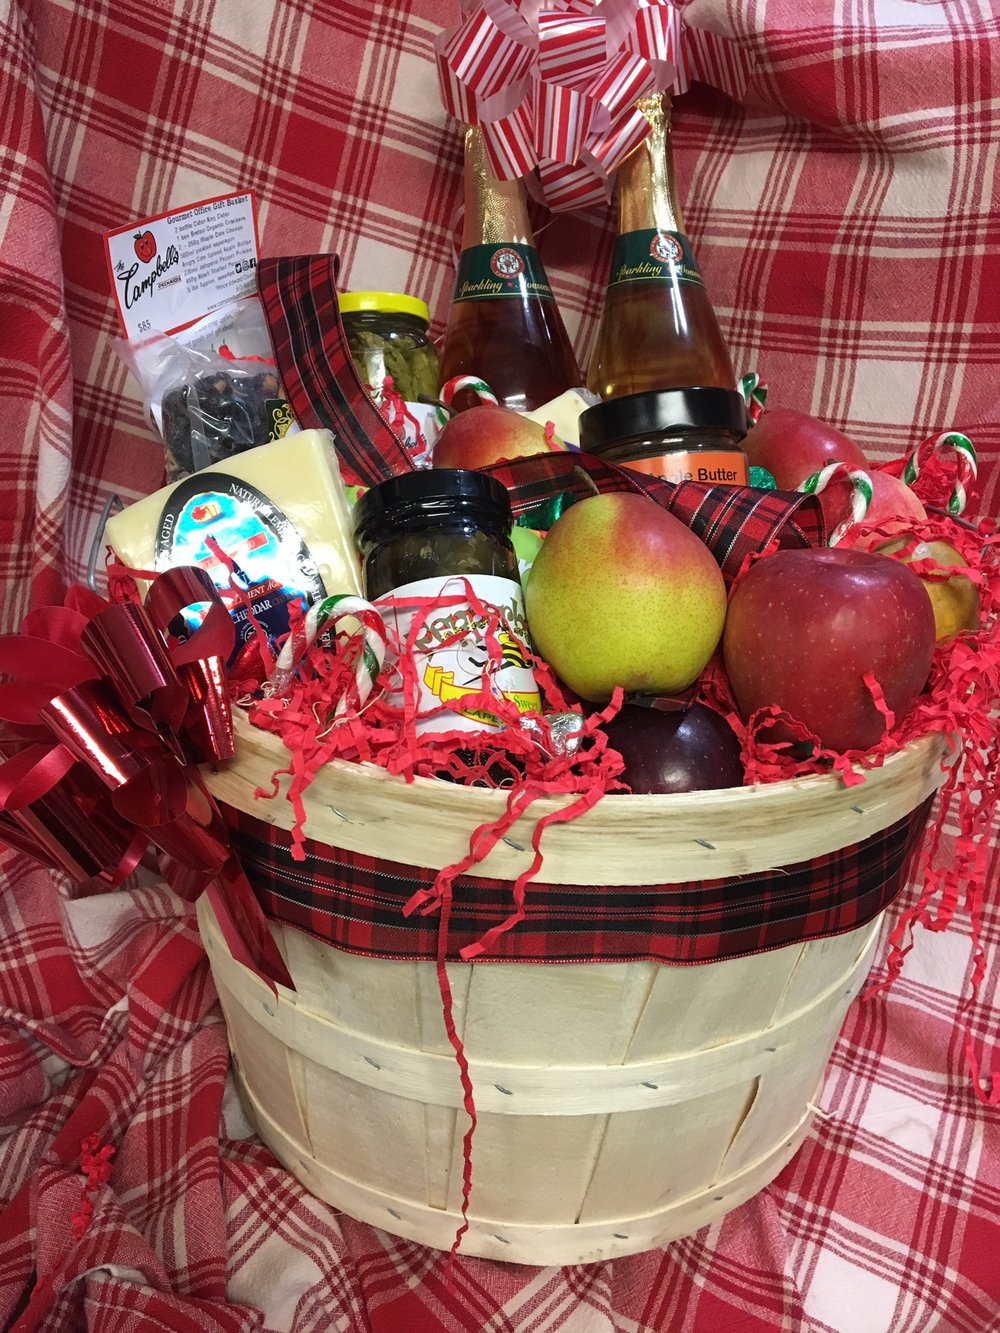 Gourmet office gift basket - $85 2 bottles of Cider Keg Cider 1 box Breton Organic Crackers 2 -250g Maple Dale Cheese 500ml Pickled Asparagus 1-250ml Angry Cats Spiced Apple Butter 236ml Jalapeno Pepper Pickles 400g Black Shelled Peanuts 5 lbs Assorted Apples Presented in a half bushel basket brimming with apples and candy canes and kisses